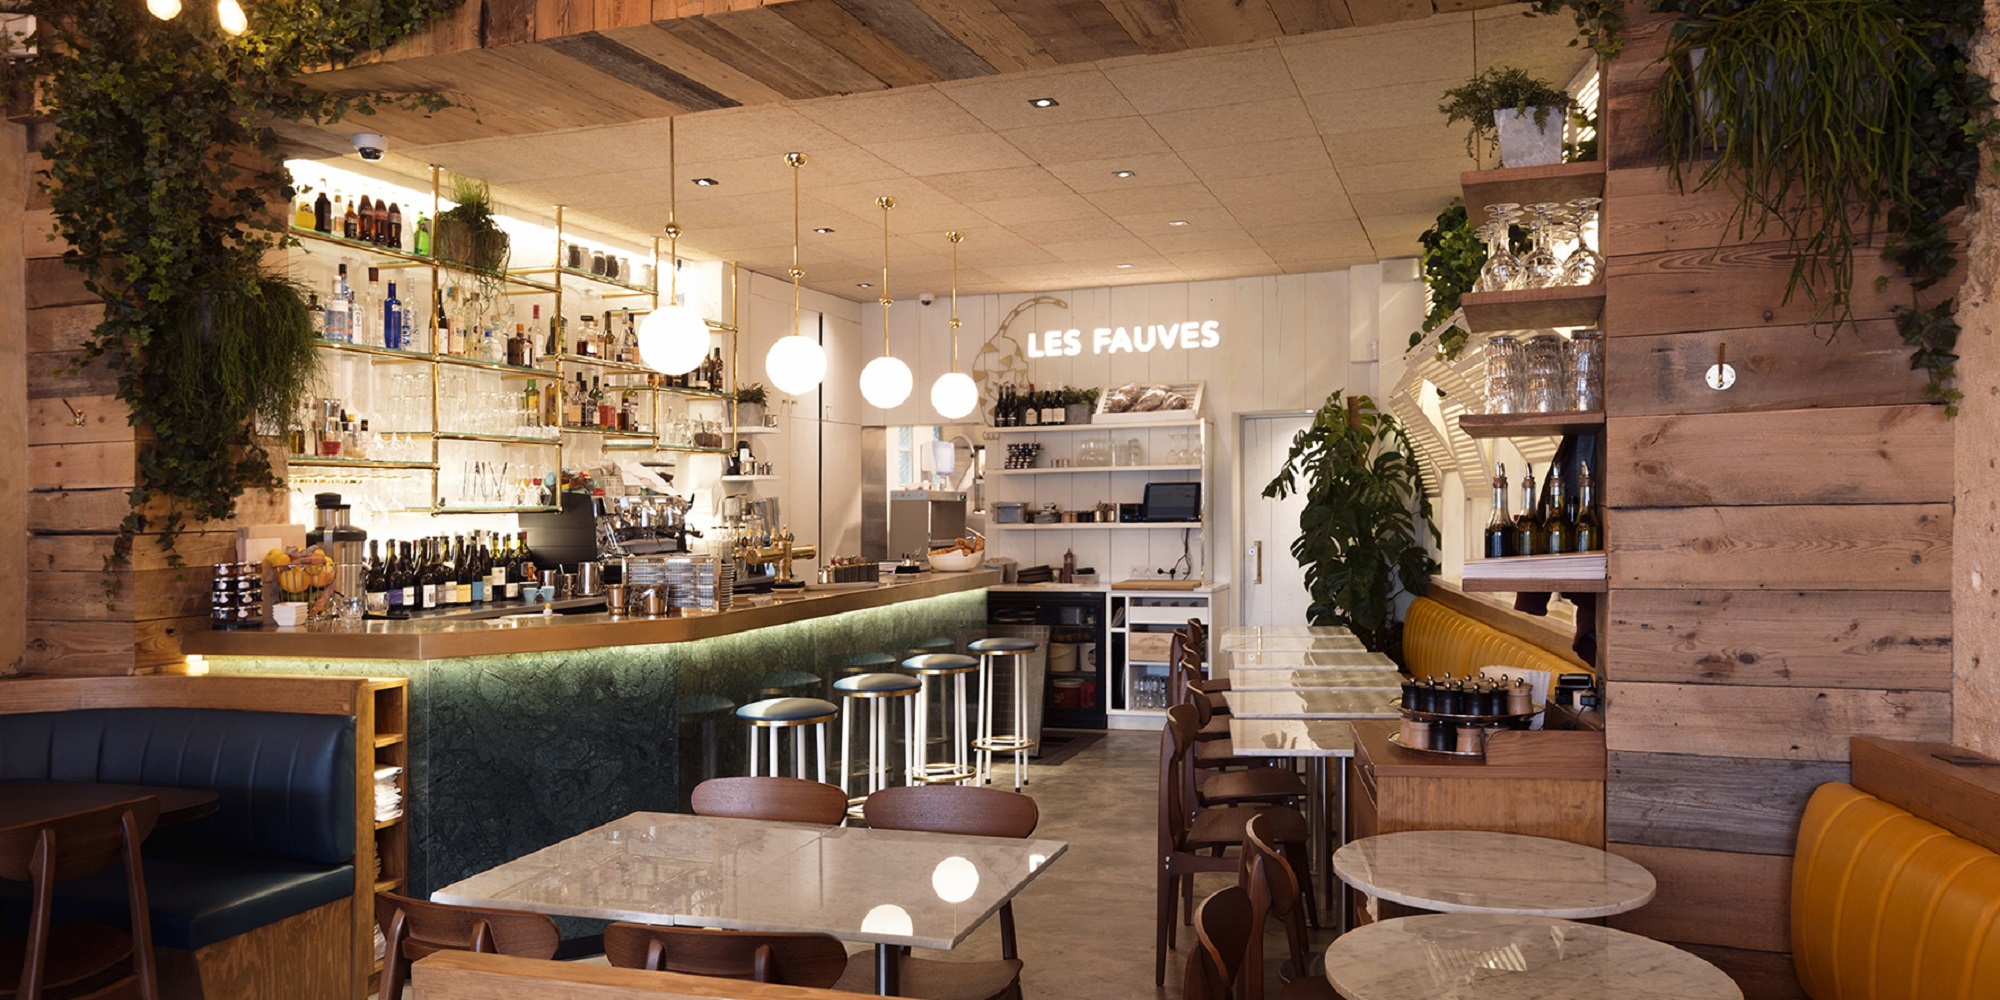 Brunch Les Fauves (75014 Paris)